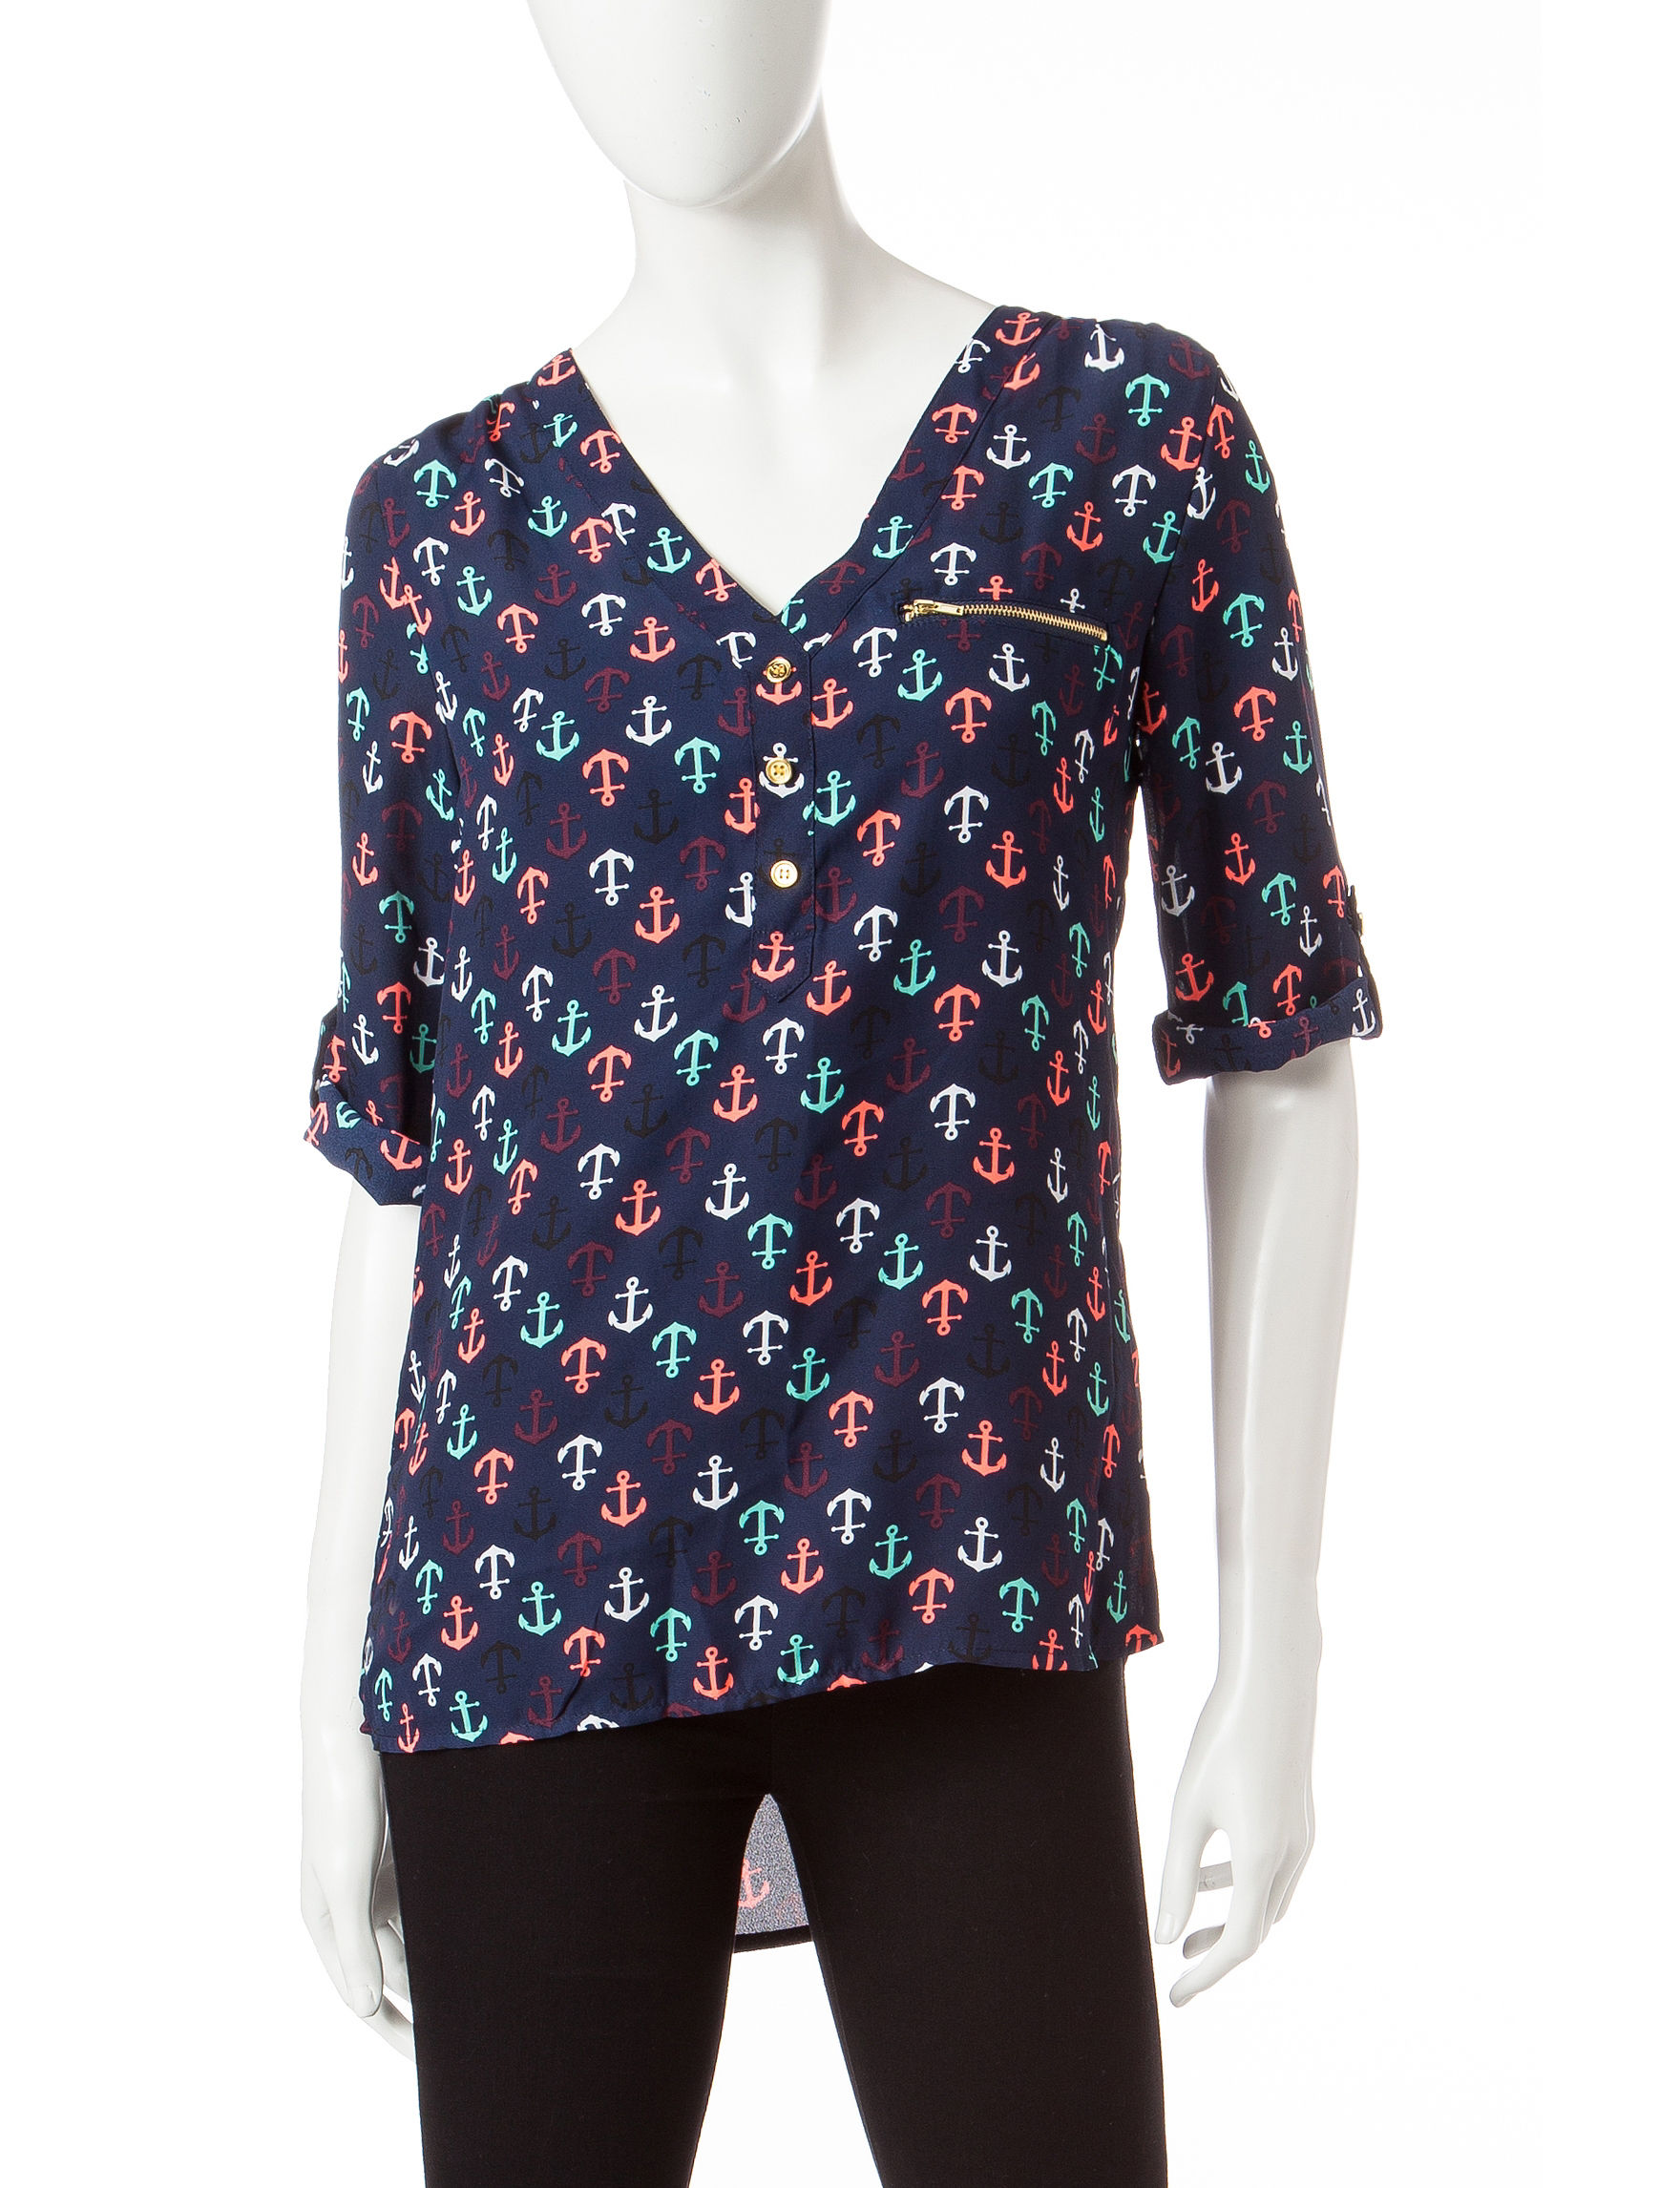 Wishful Park Navy Multi Shirts & Blouses